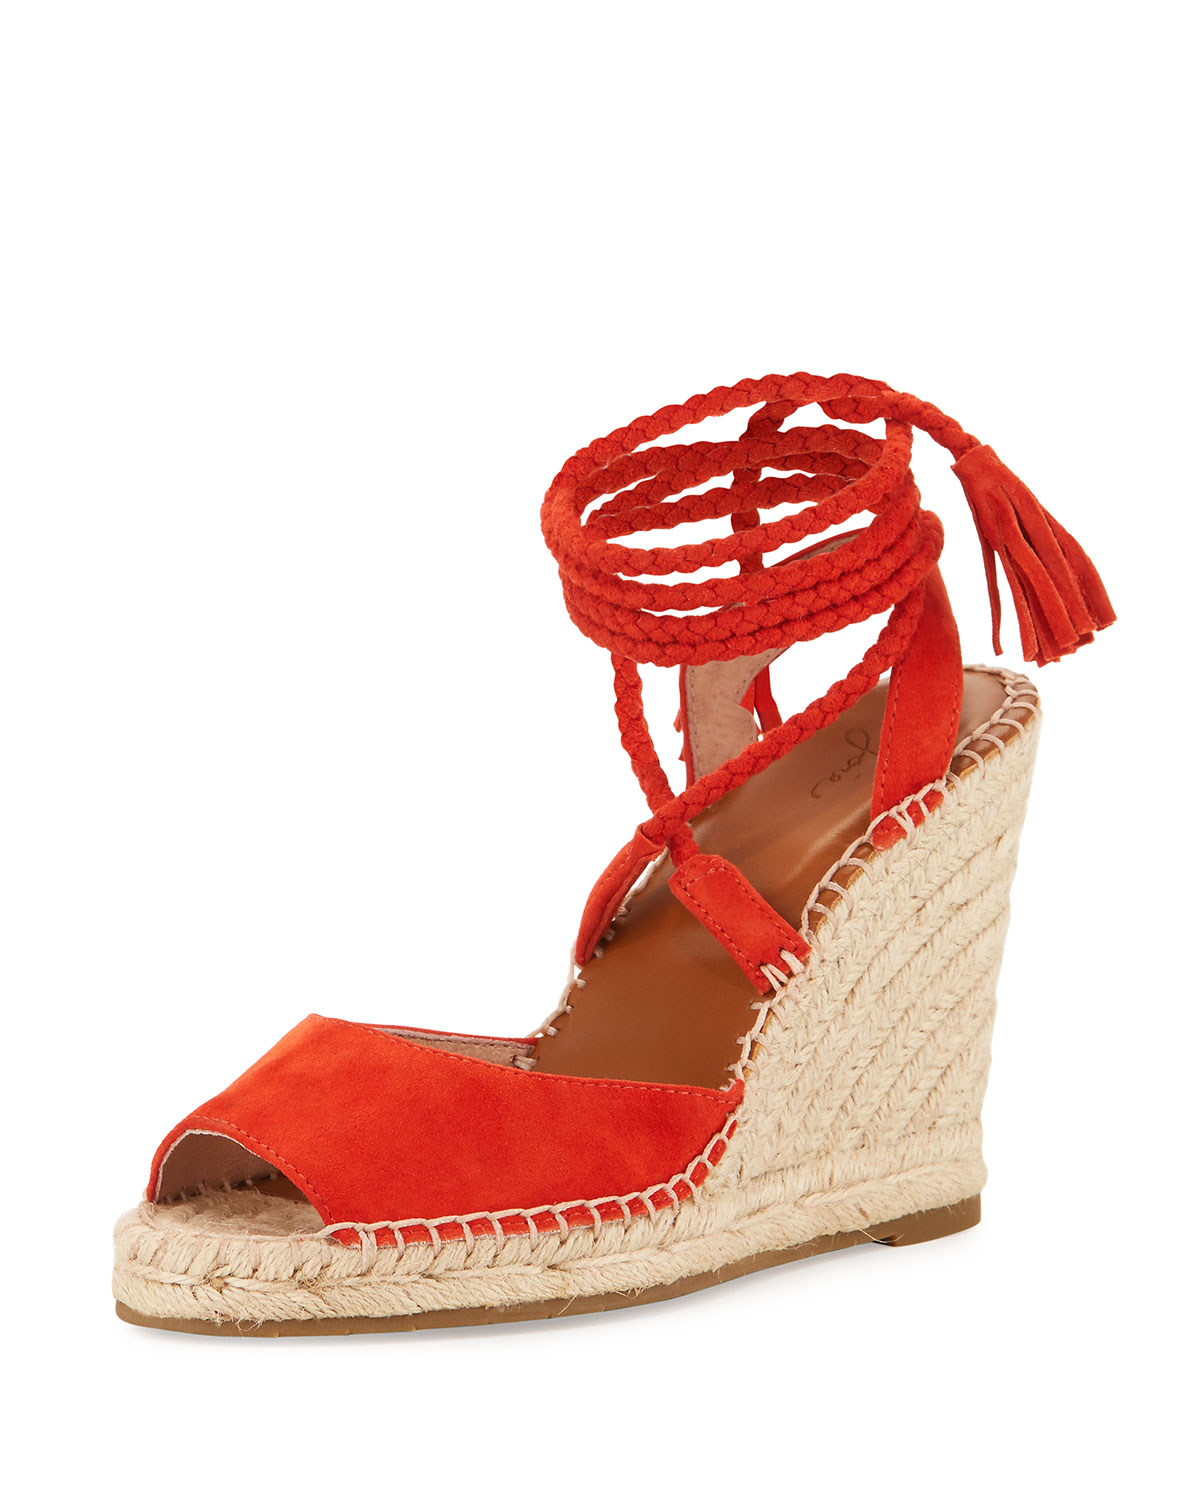 4fd4f5b3bbf1e Joie Phyllis Suede Lace-Up Wedge Espadrille Sandal